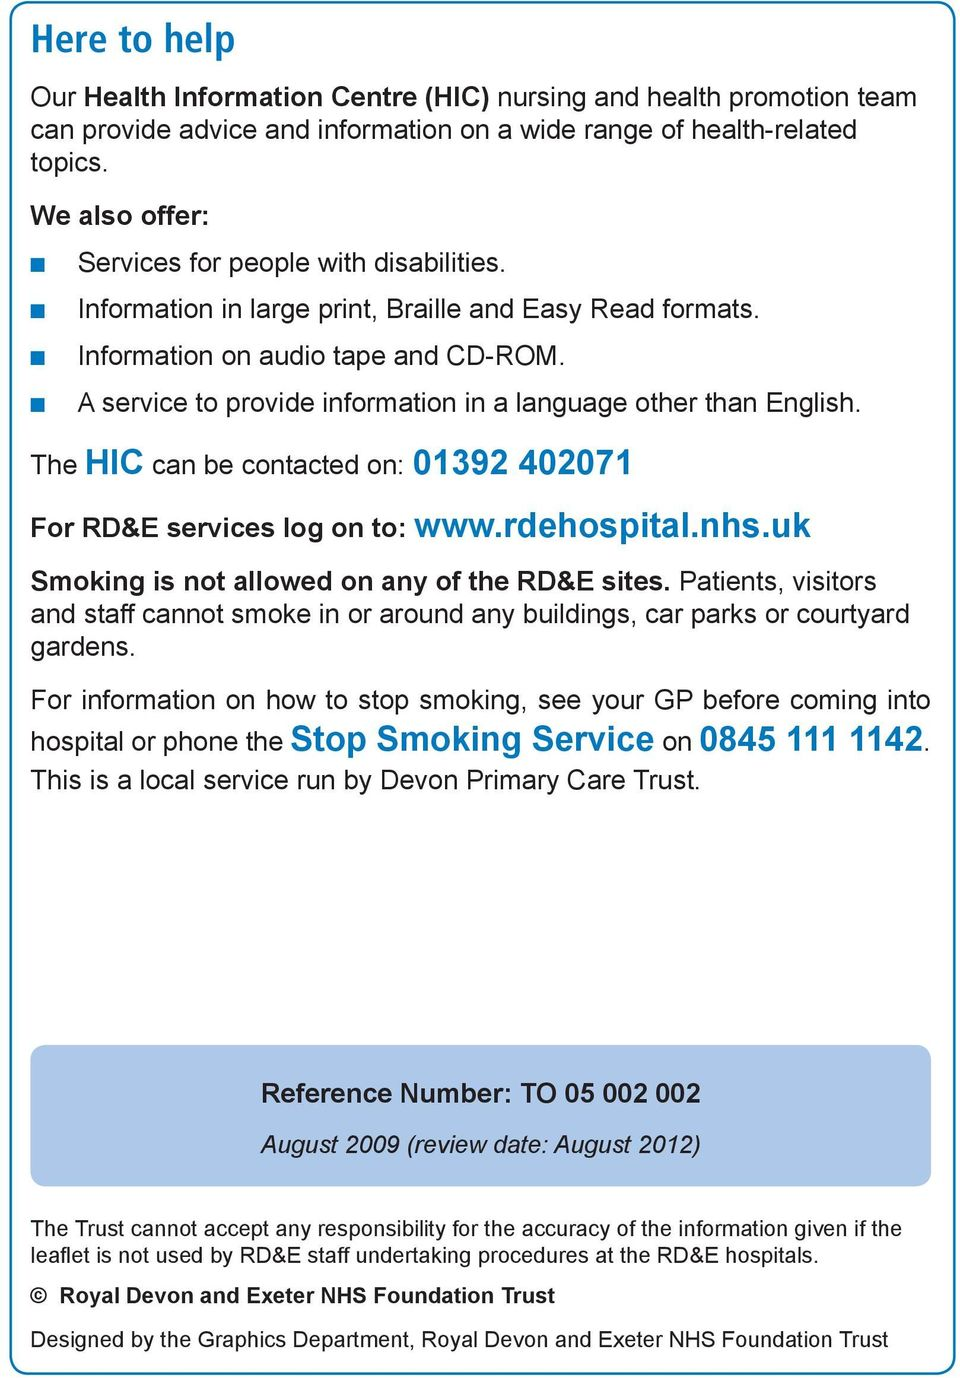 A service to provide information in a language other than English. The HIC can be contacted on: 01392 402071 For RD&E services log on to: www.rdehospital.nhs.